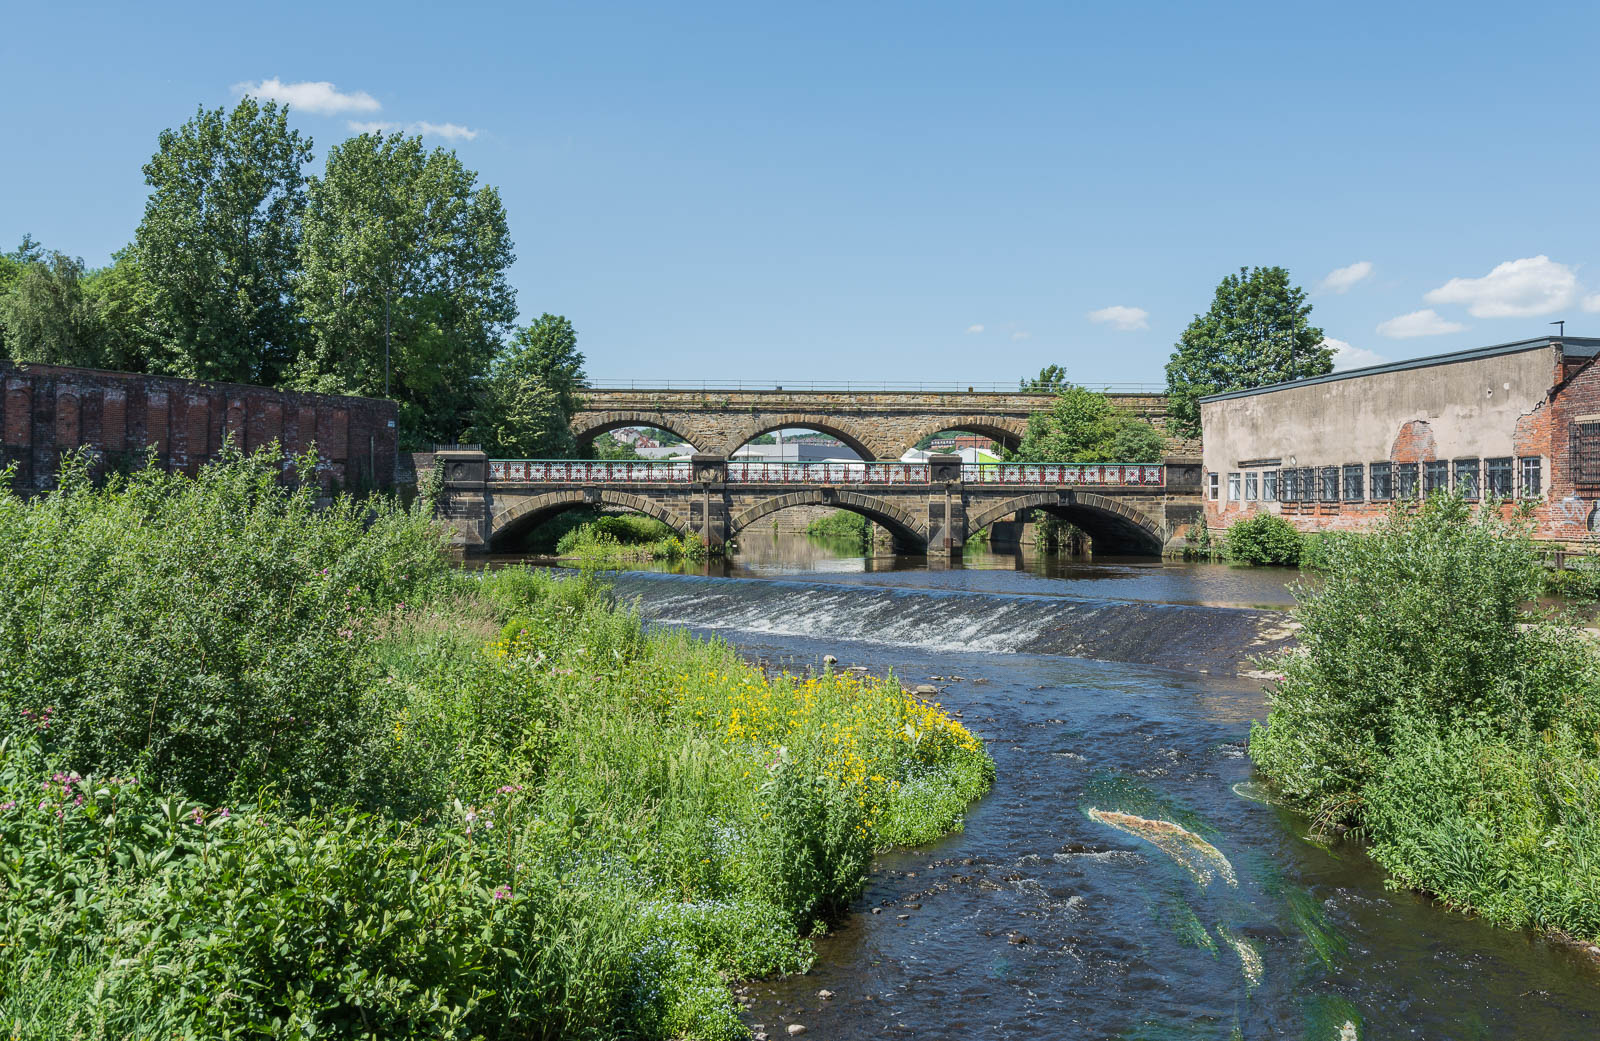 The Norfolk Bridges Weir, River Don by John Gorman